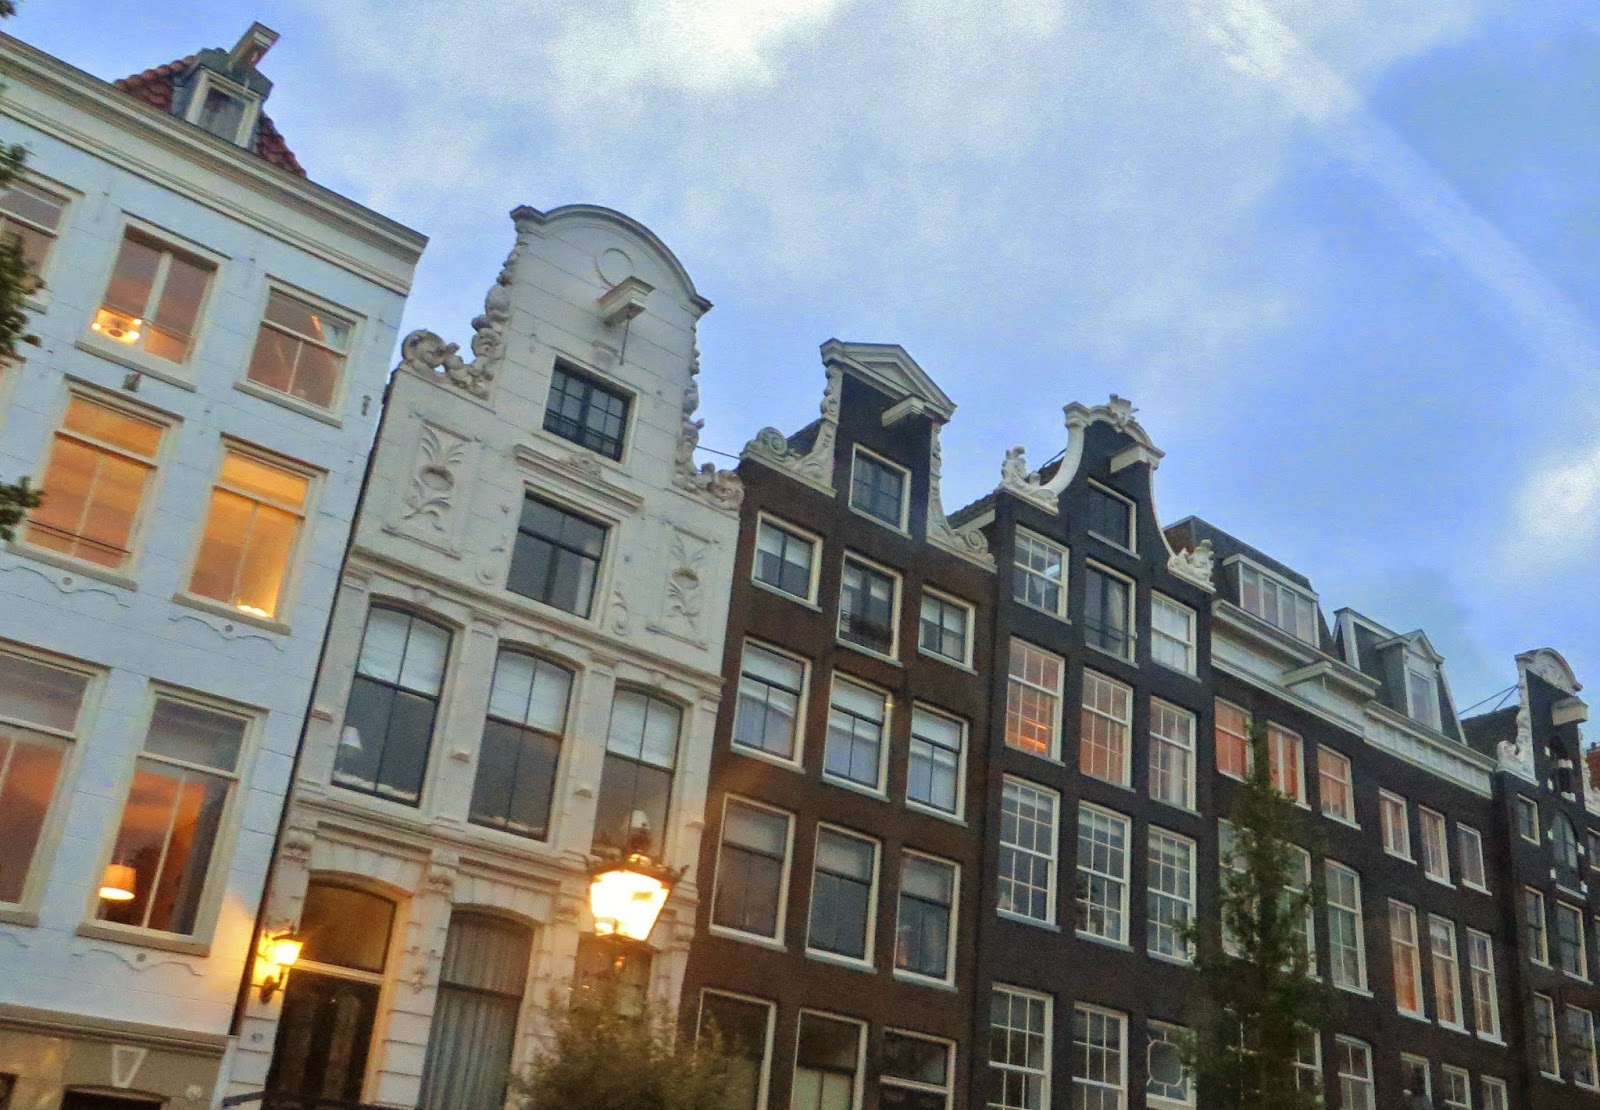 Amsterdam buildings gabbles